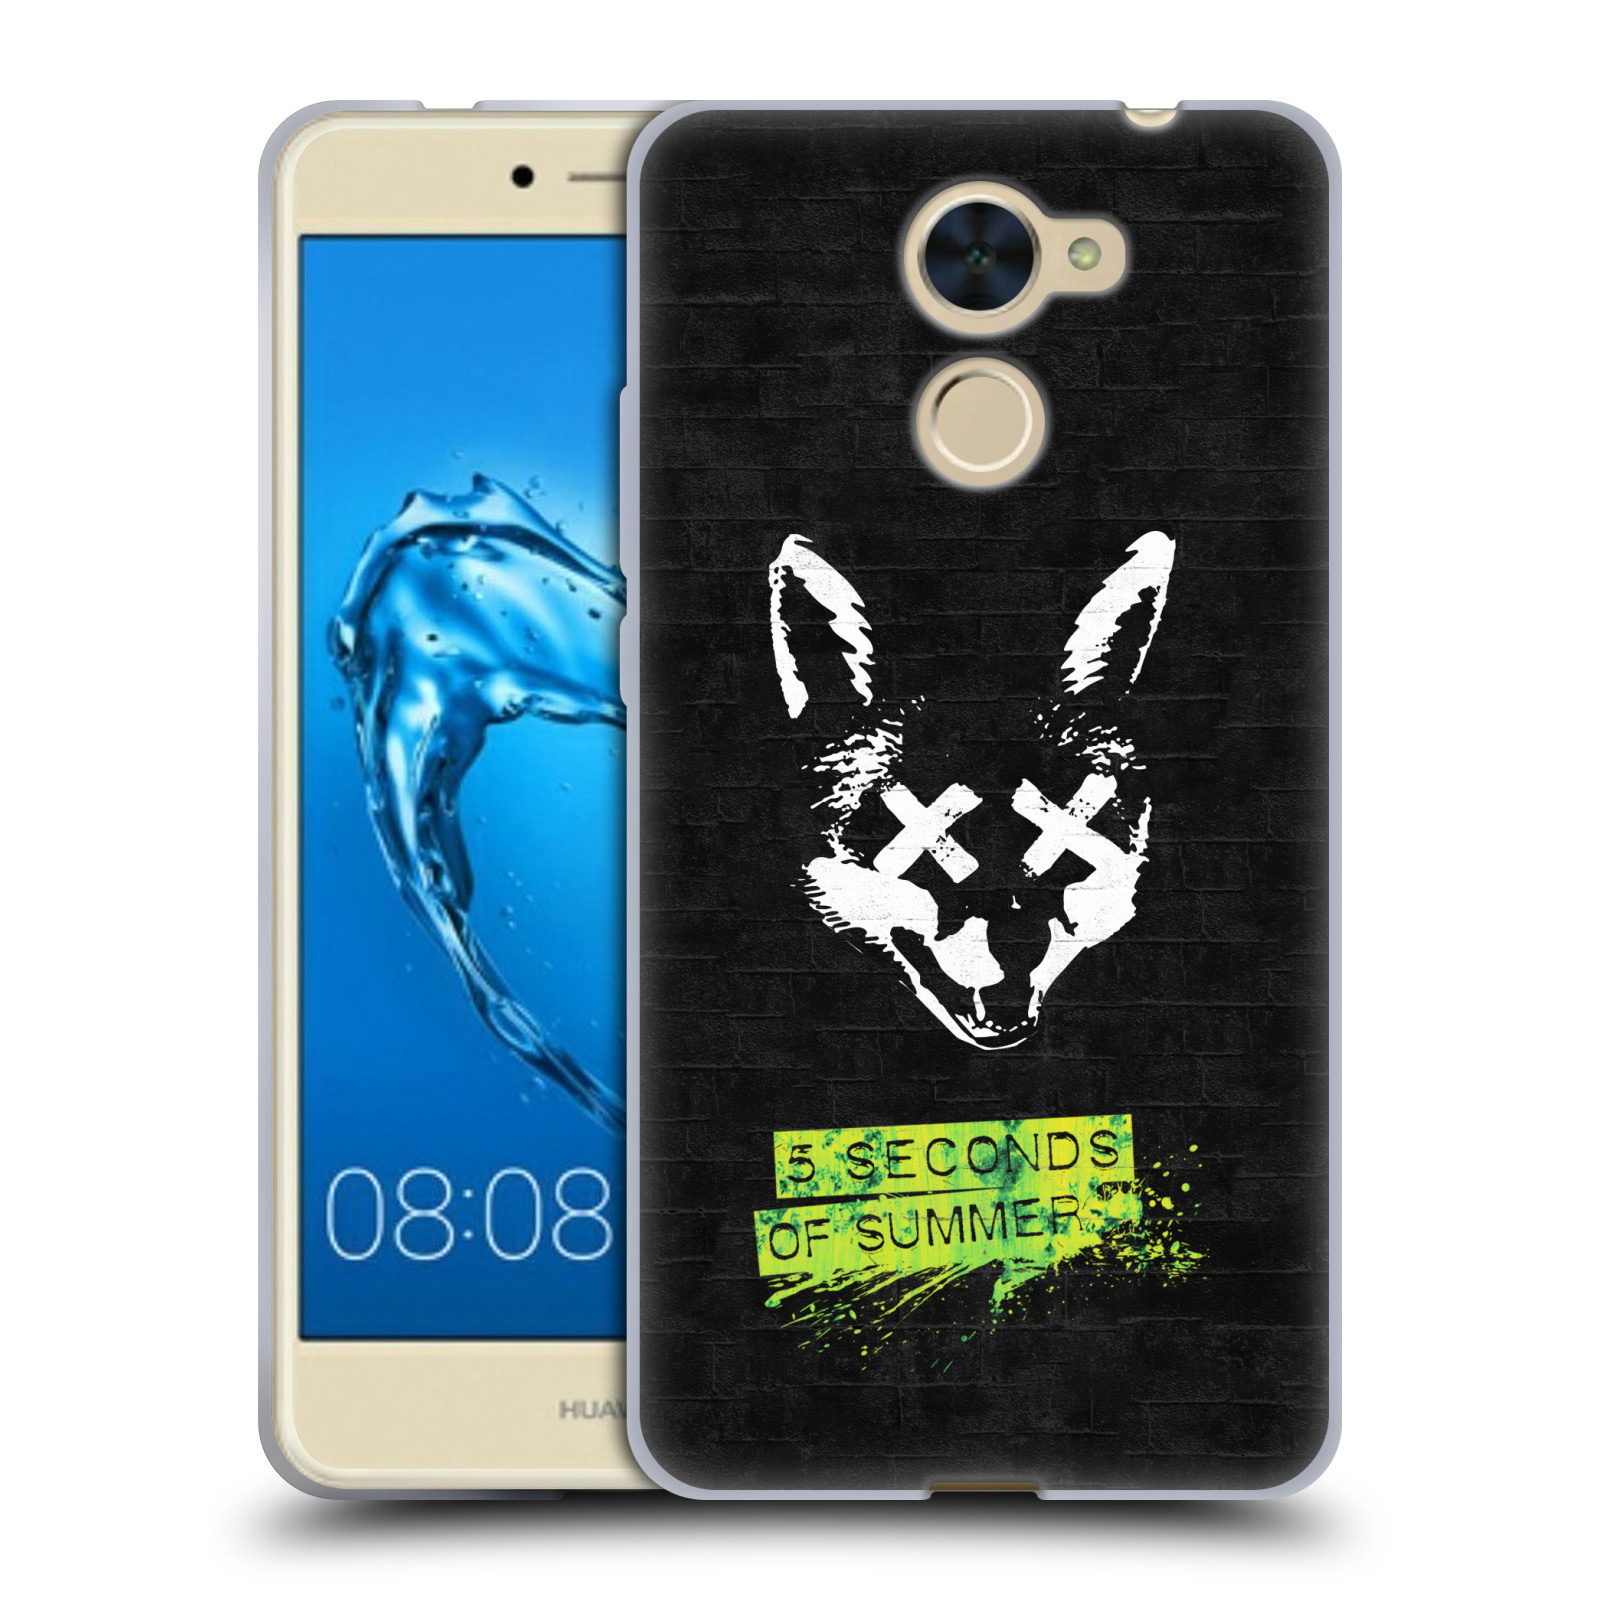 Silikonové pouzdro na mobil Huawei Y7 - Head Case - 5 Seconds of Summer - Fox